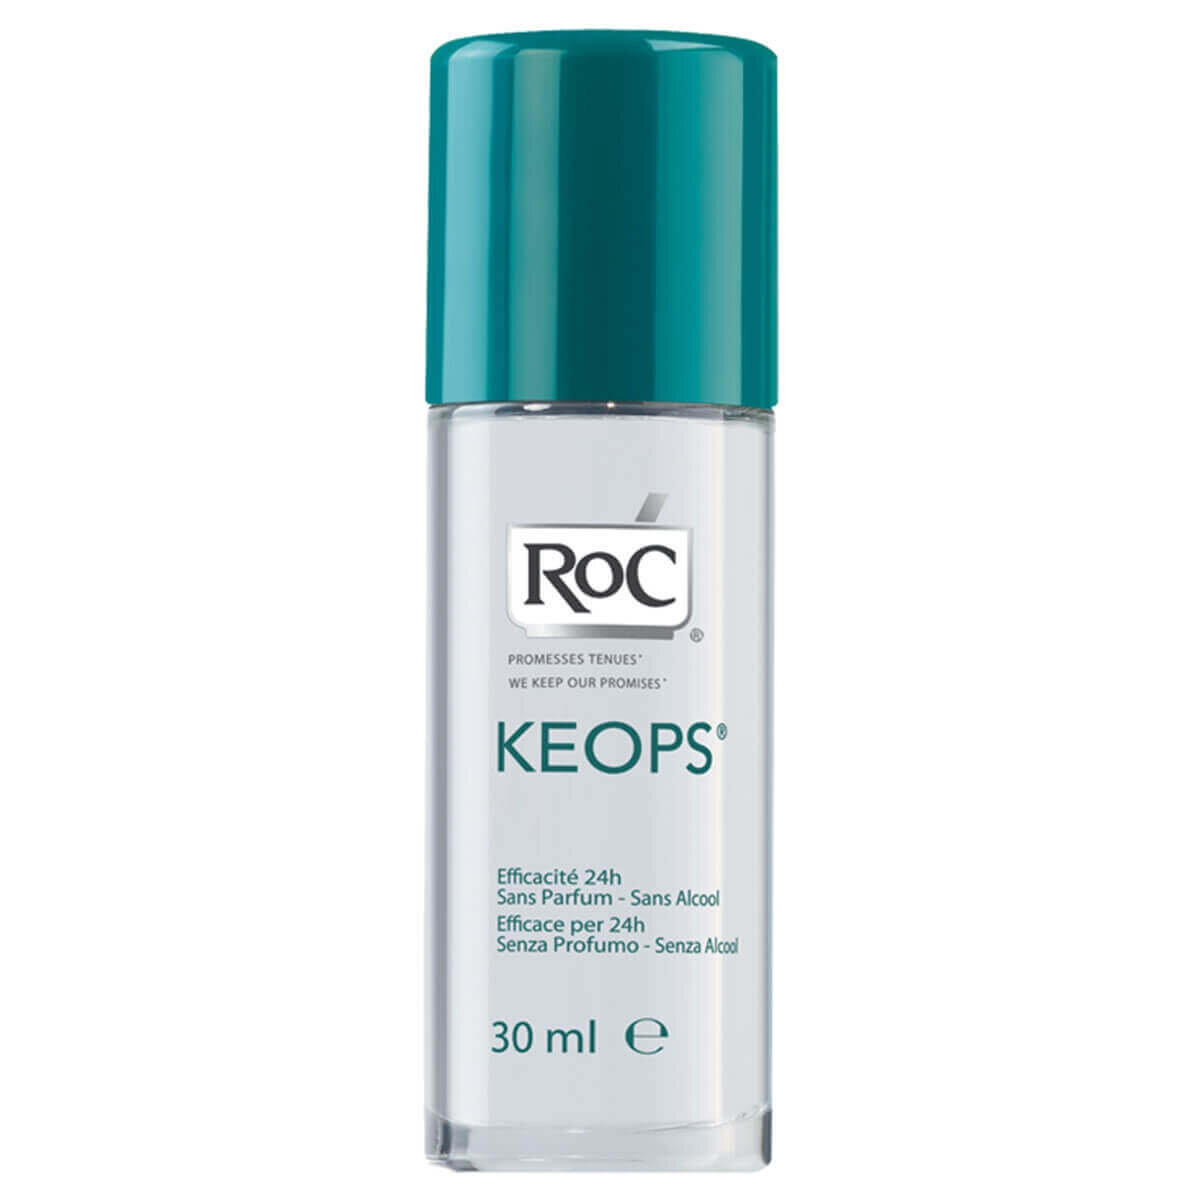 Keops Roll-On Deodorant 30 ml